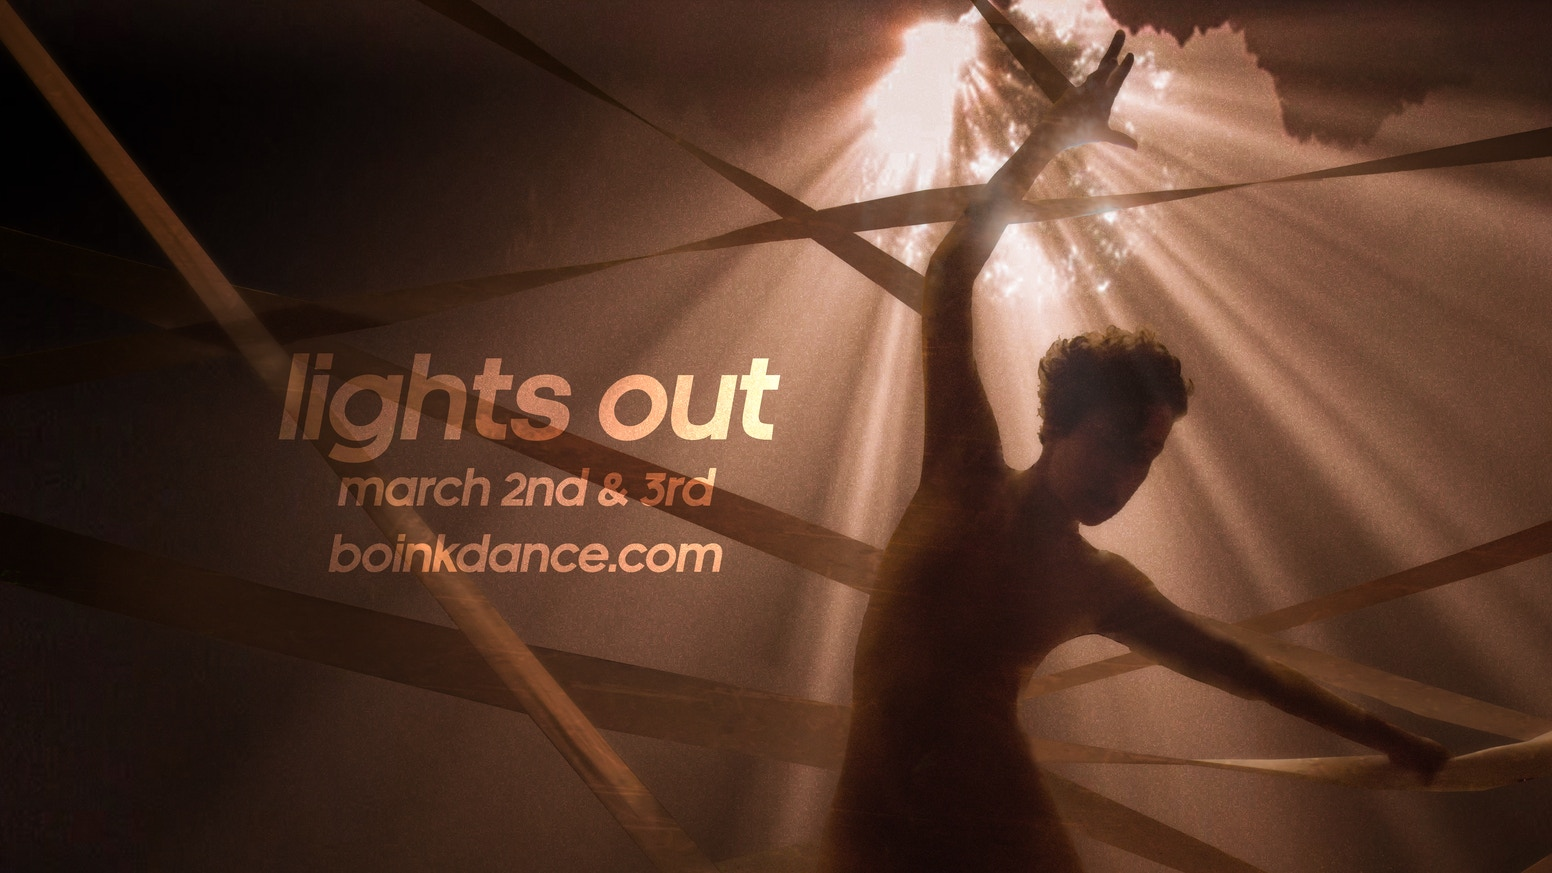 Dance Film Is Putting On Lights Out An Evening Length Multimedia Show This March In Brooklyn Ny